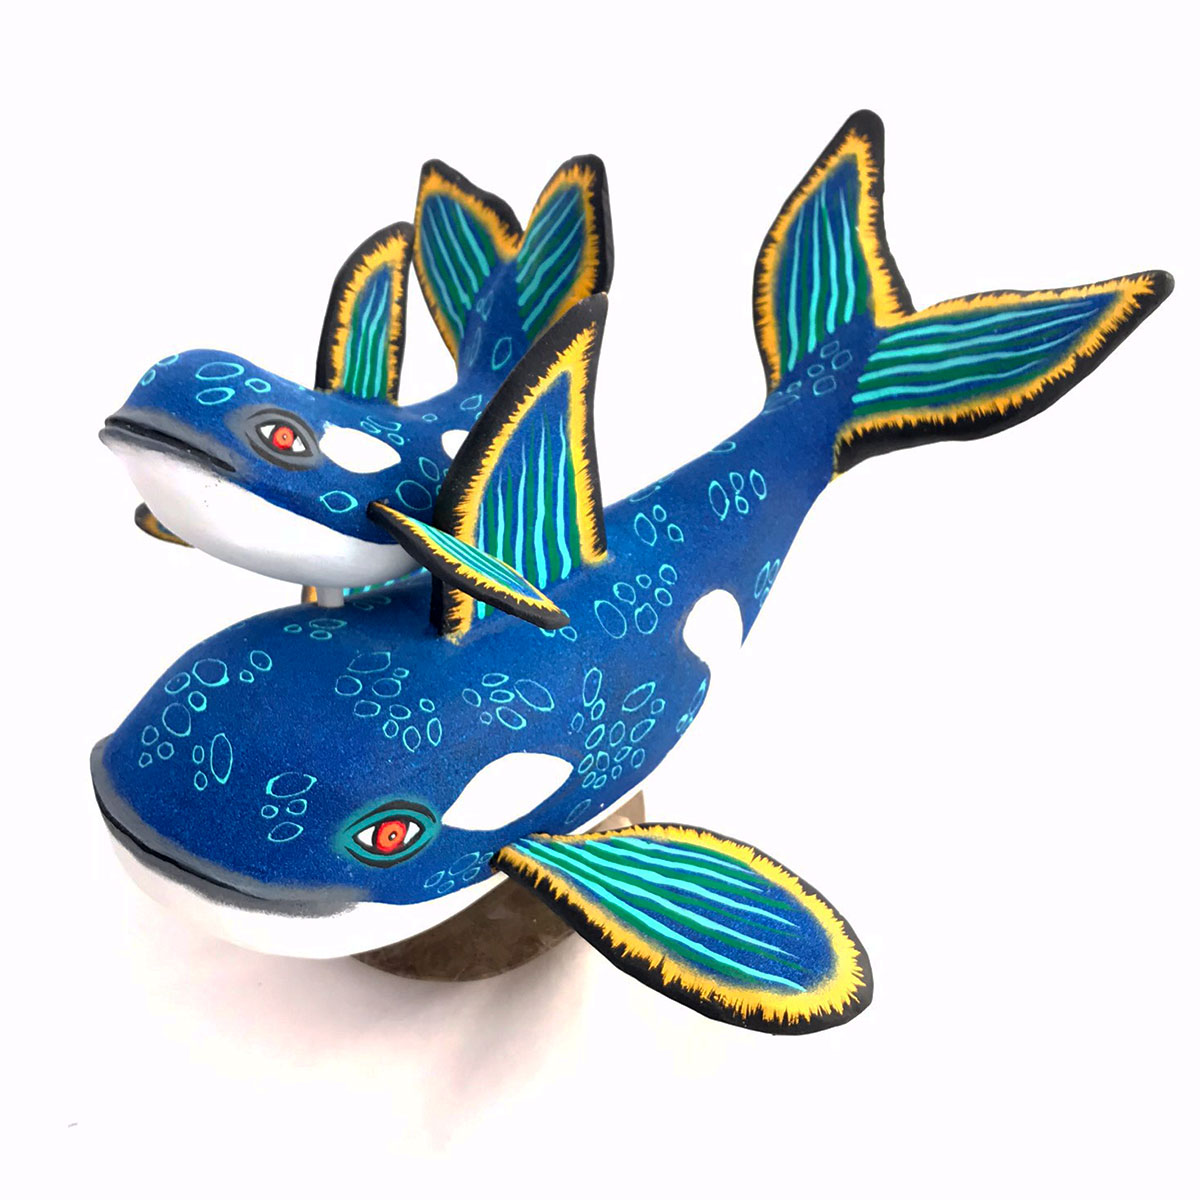 Eleazar Morales Eleazar Morales: Blue Orca Whale and Baby on Fossilized Coral Base Baby Animals